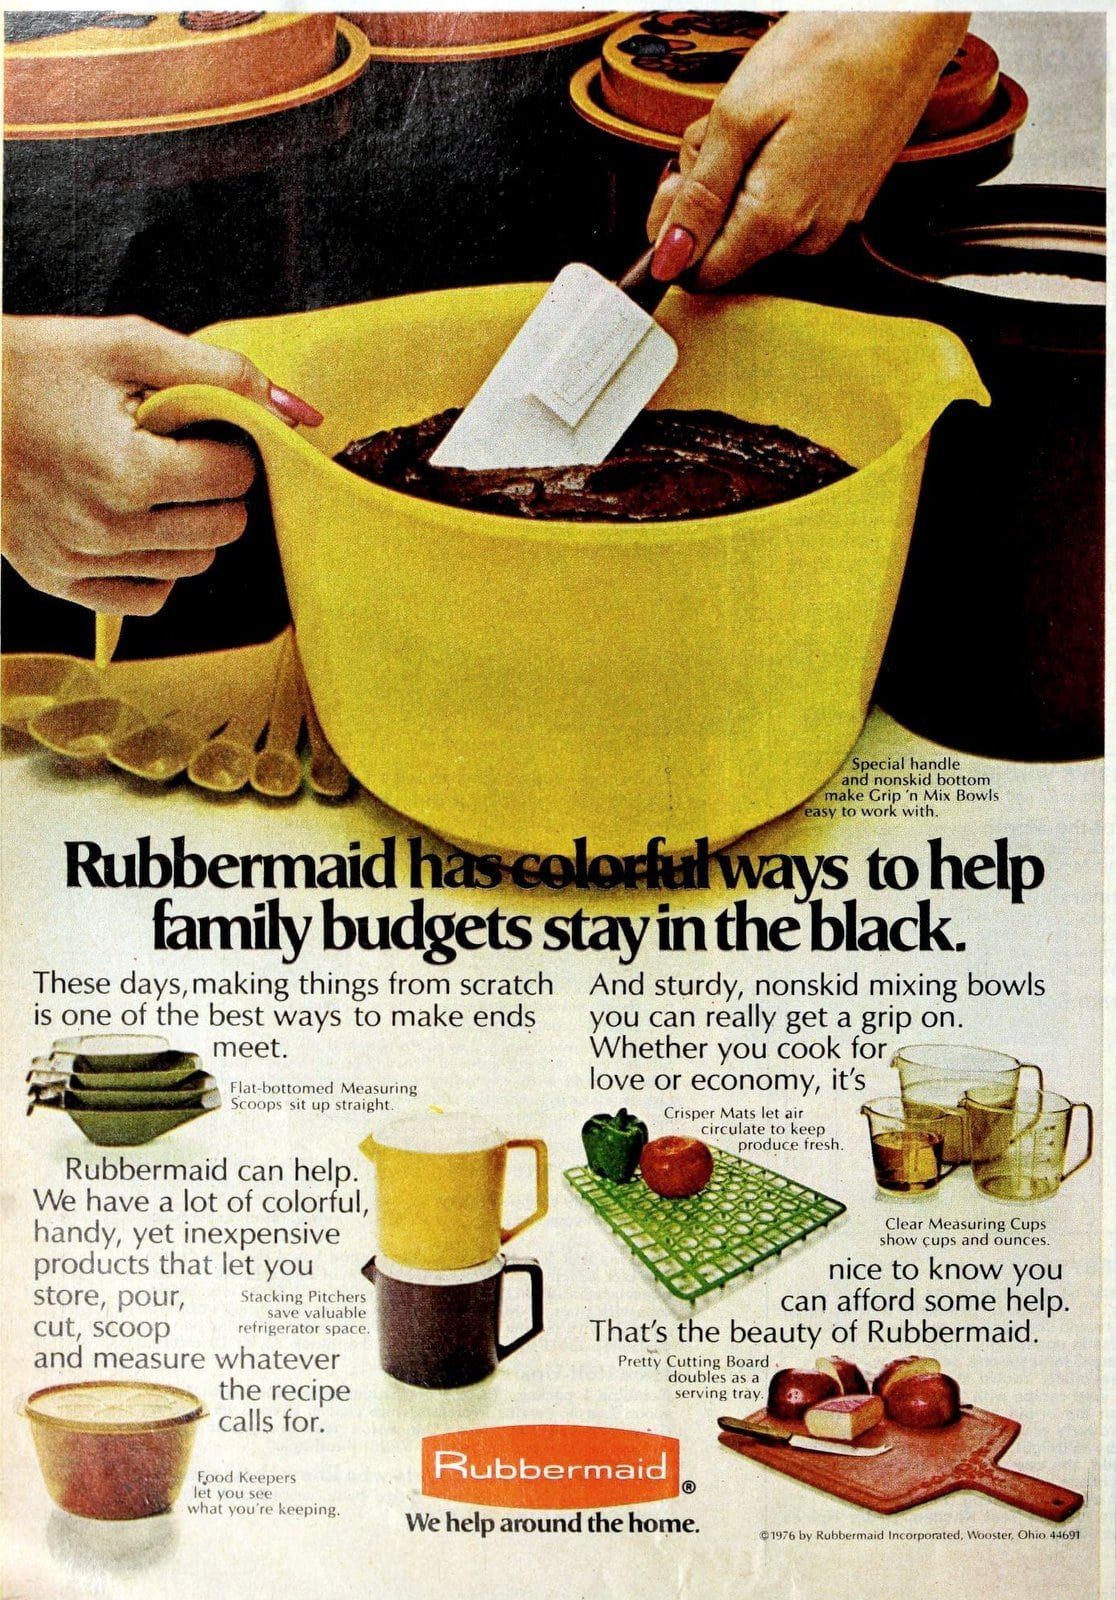 Vintage Rubbermaid plastic bowls and food storage (1976)